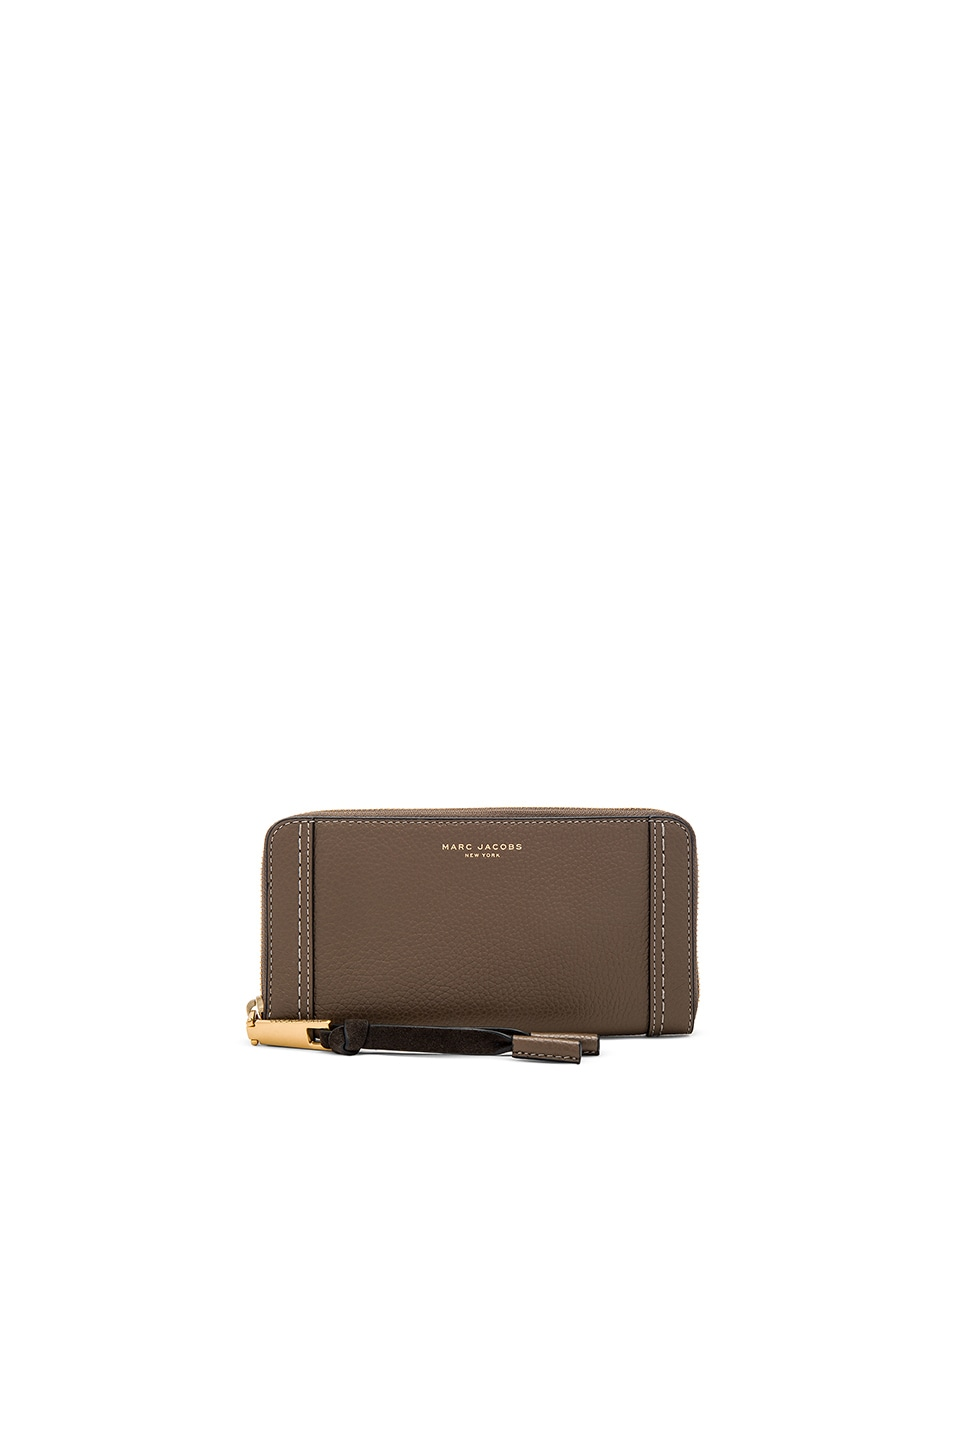 Marc Jacobs Maverick Standard Continental Wallet in Teak